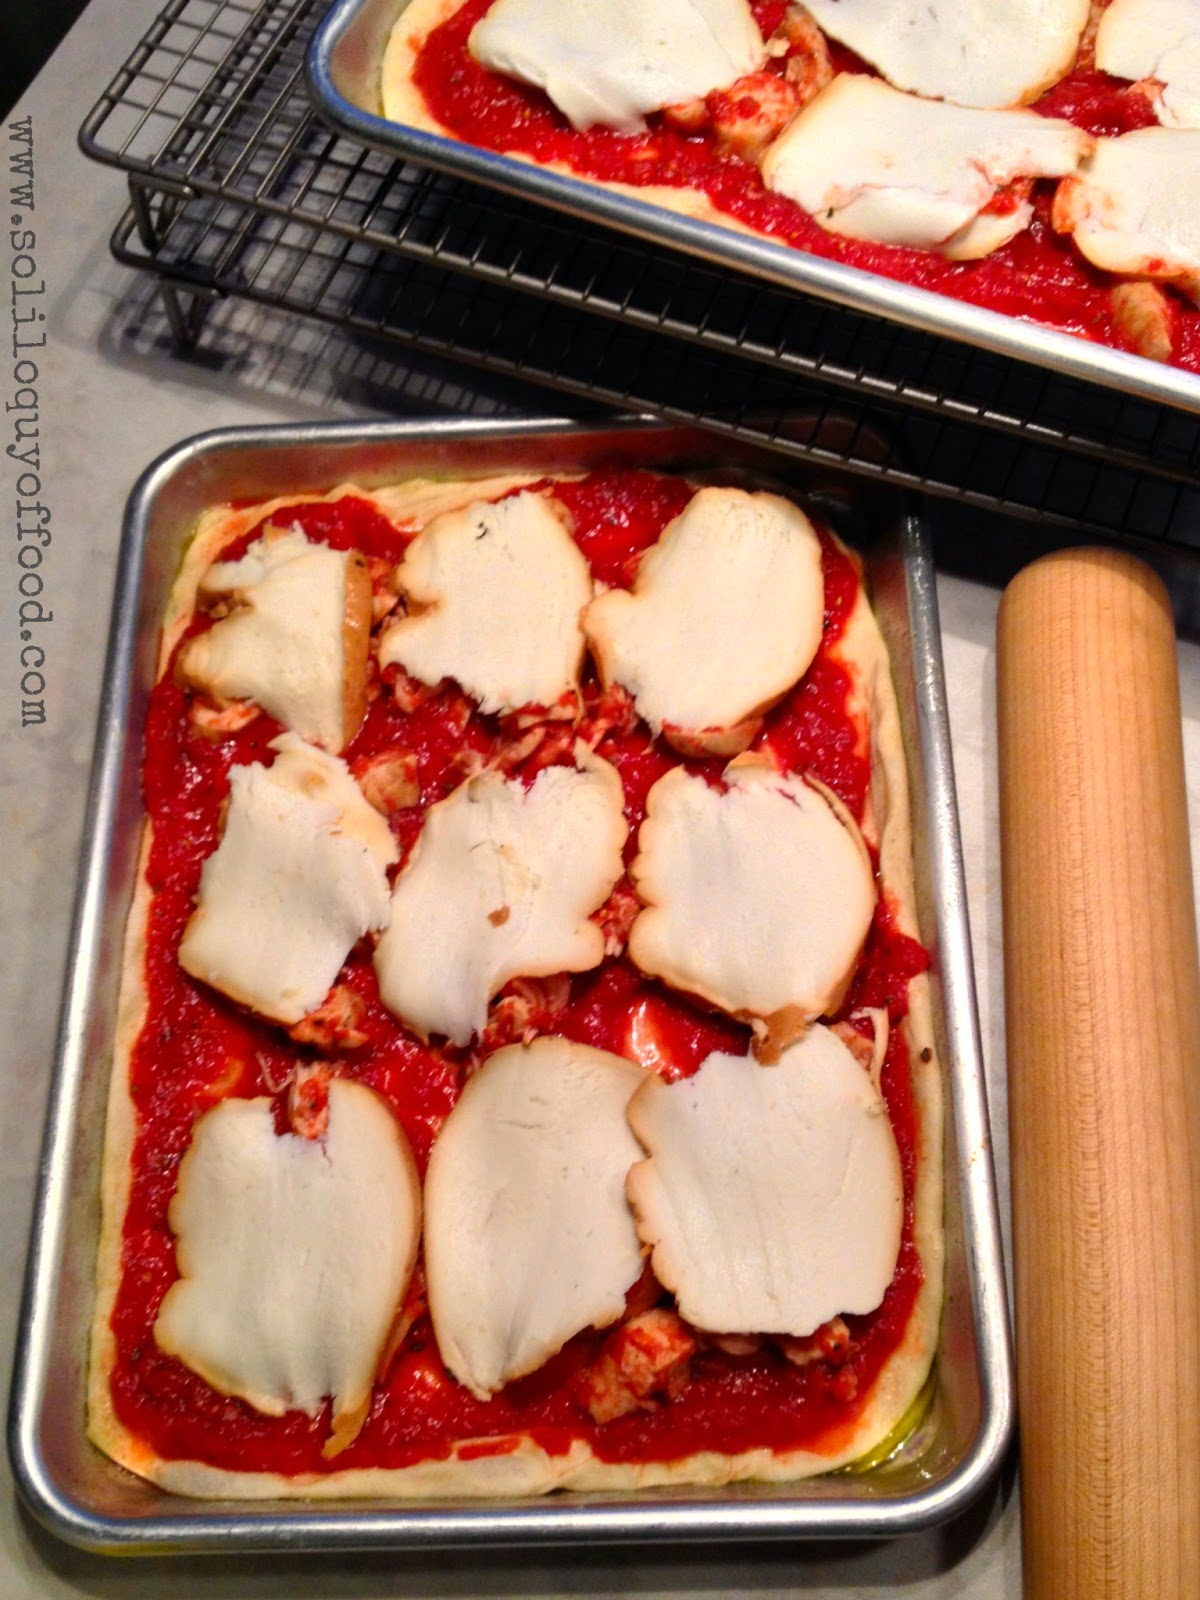 Chicken Parm Pizza With Skoked Mozzarella - www.soliloquyoffood.com